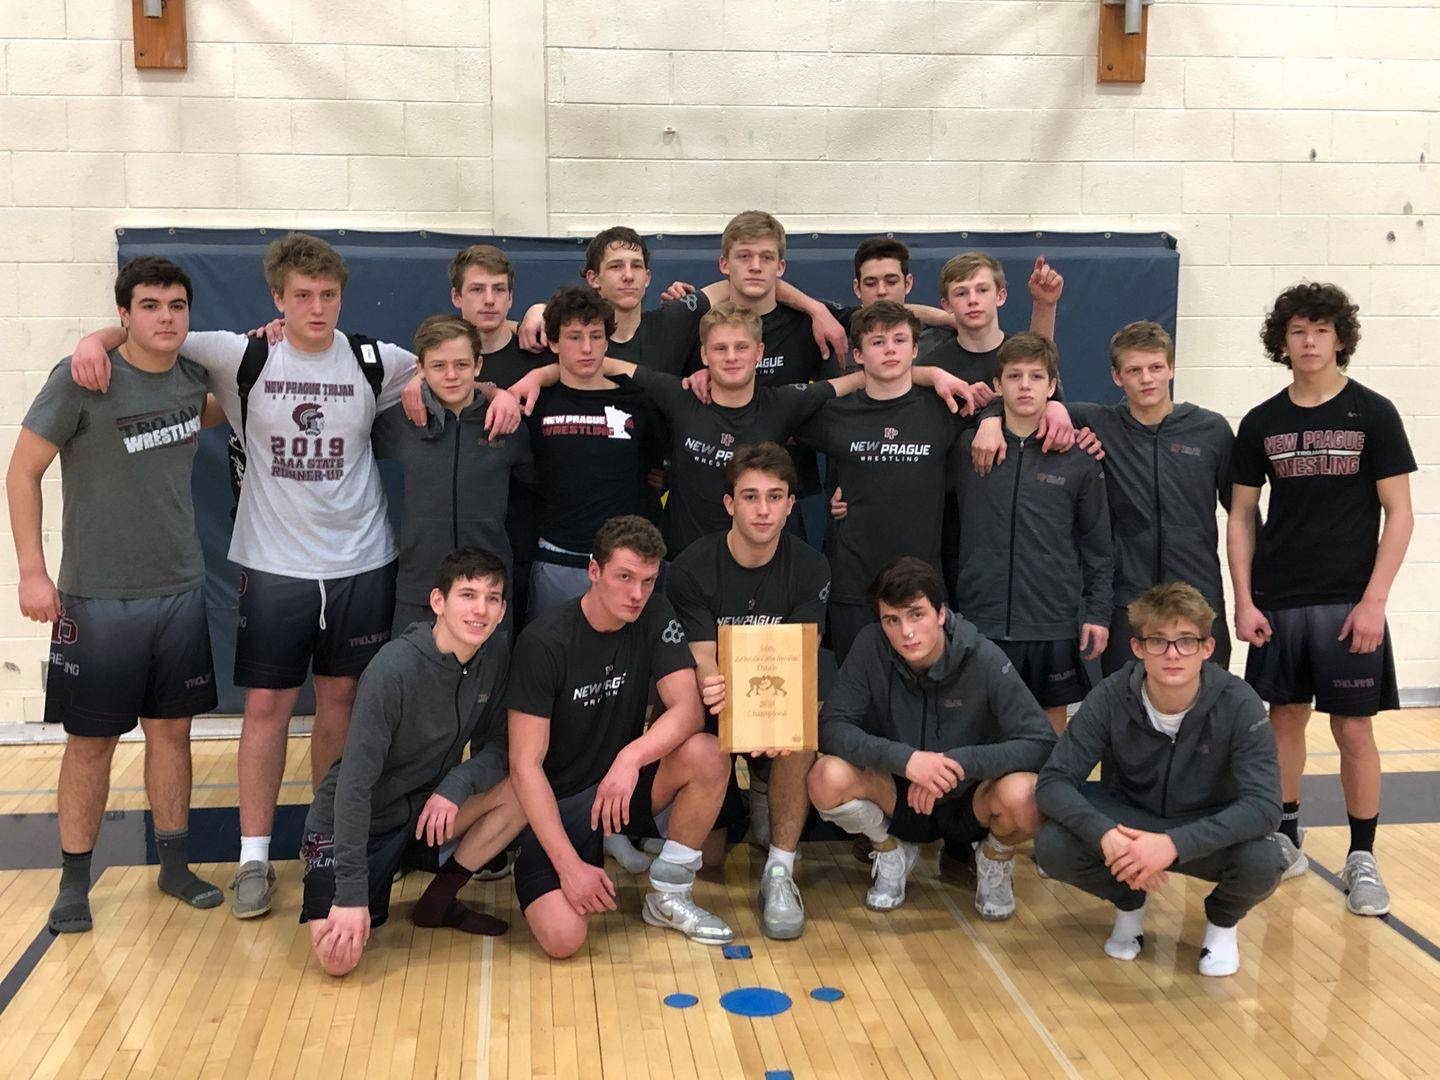 Trojan wrestlers took the championship at the Zelinski Memorial Dual Tournament at Whittnall High School in Greenfield, WI the weekend of January 24-25. In the championship round, New Prague defeated Mukwonago, WI (#1 team in WI's Division I) by a score of 40-28. Trojans won the tourney going 5-0!